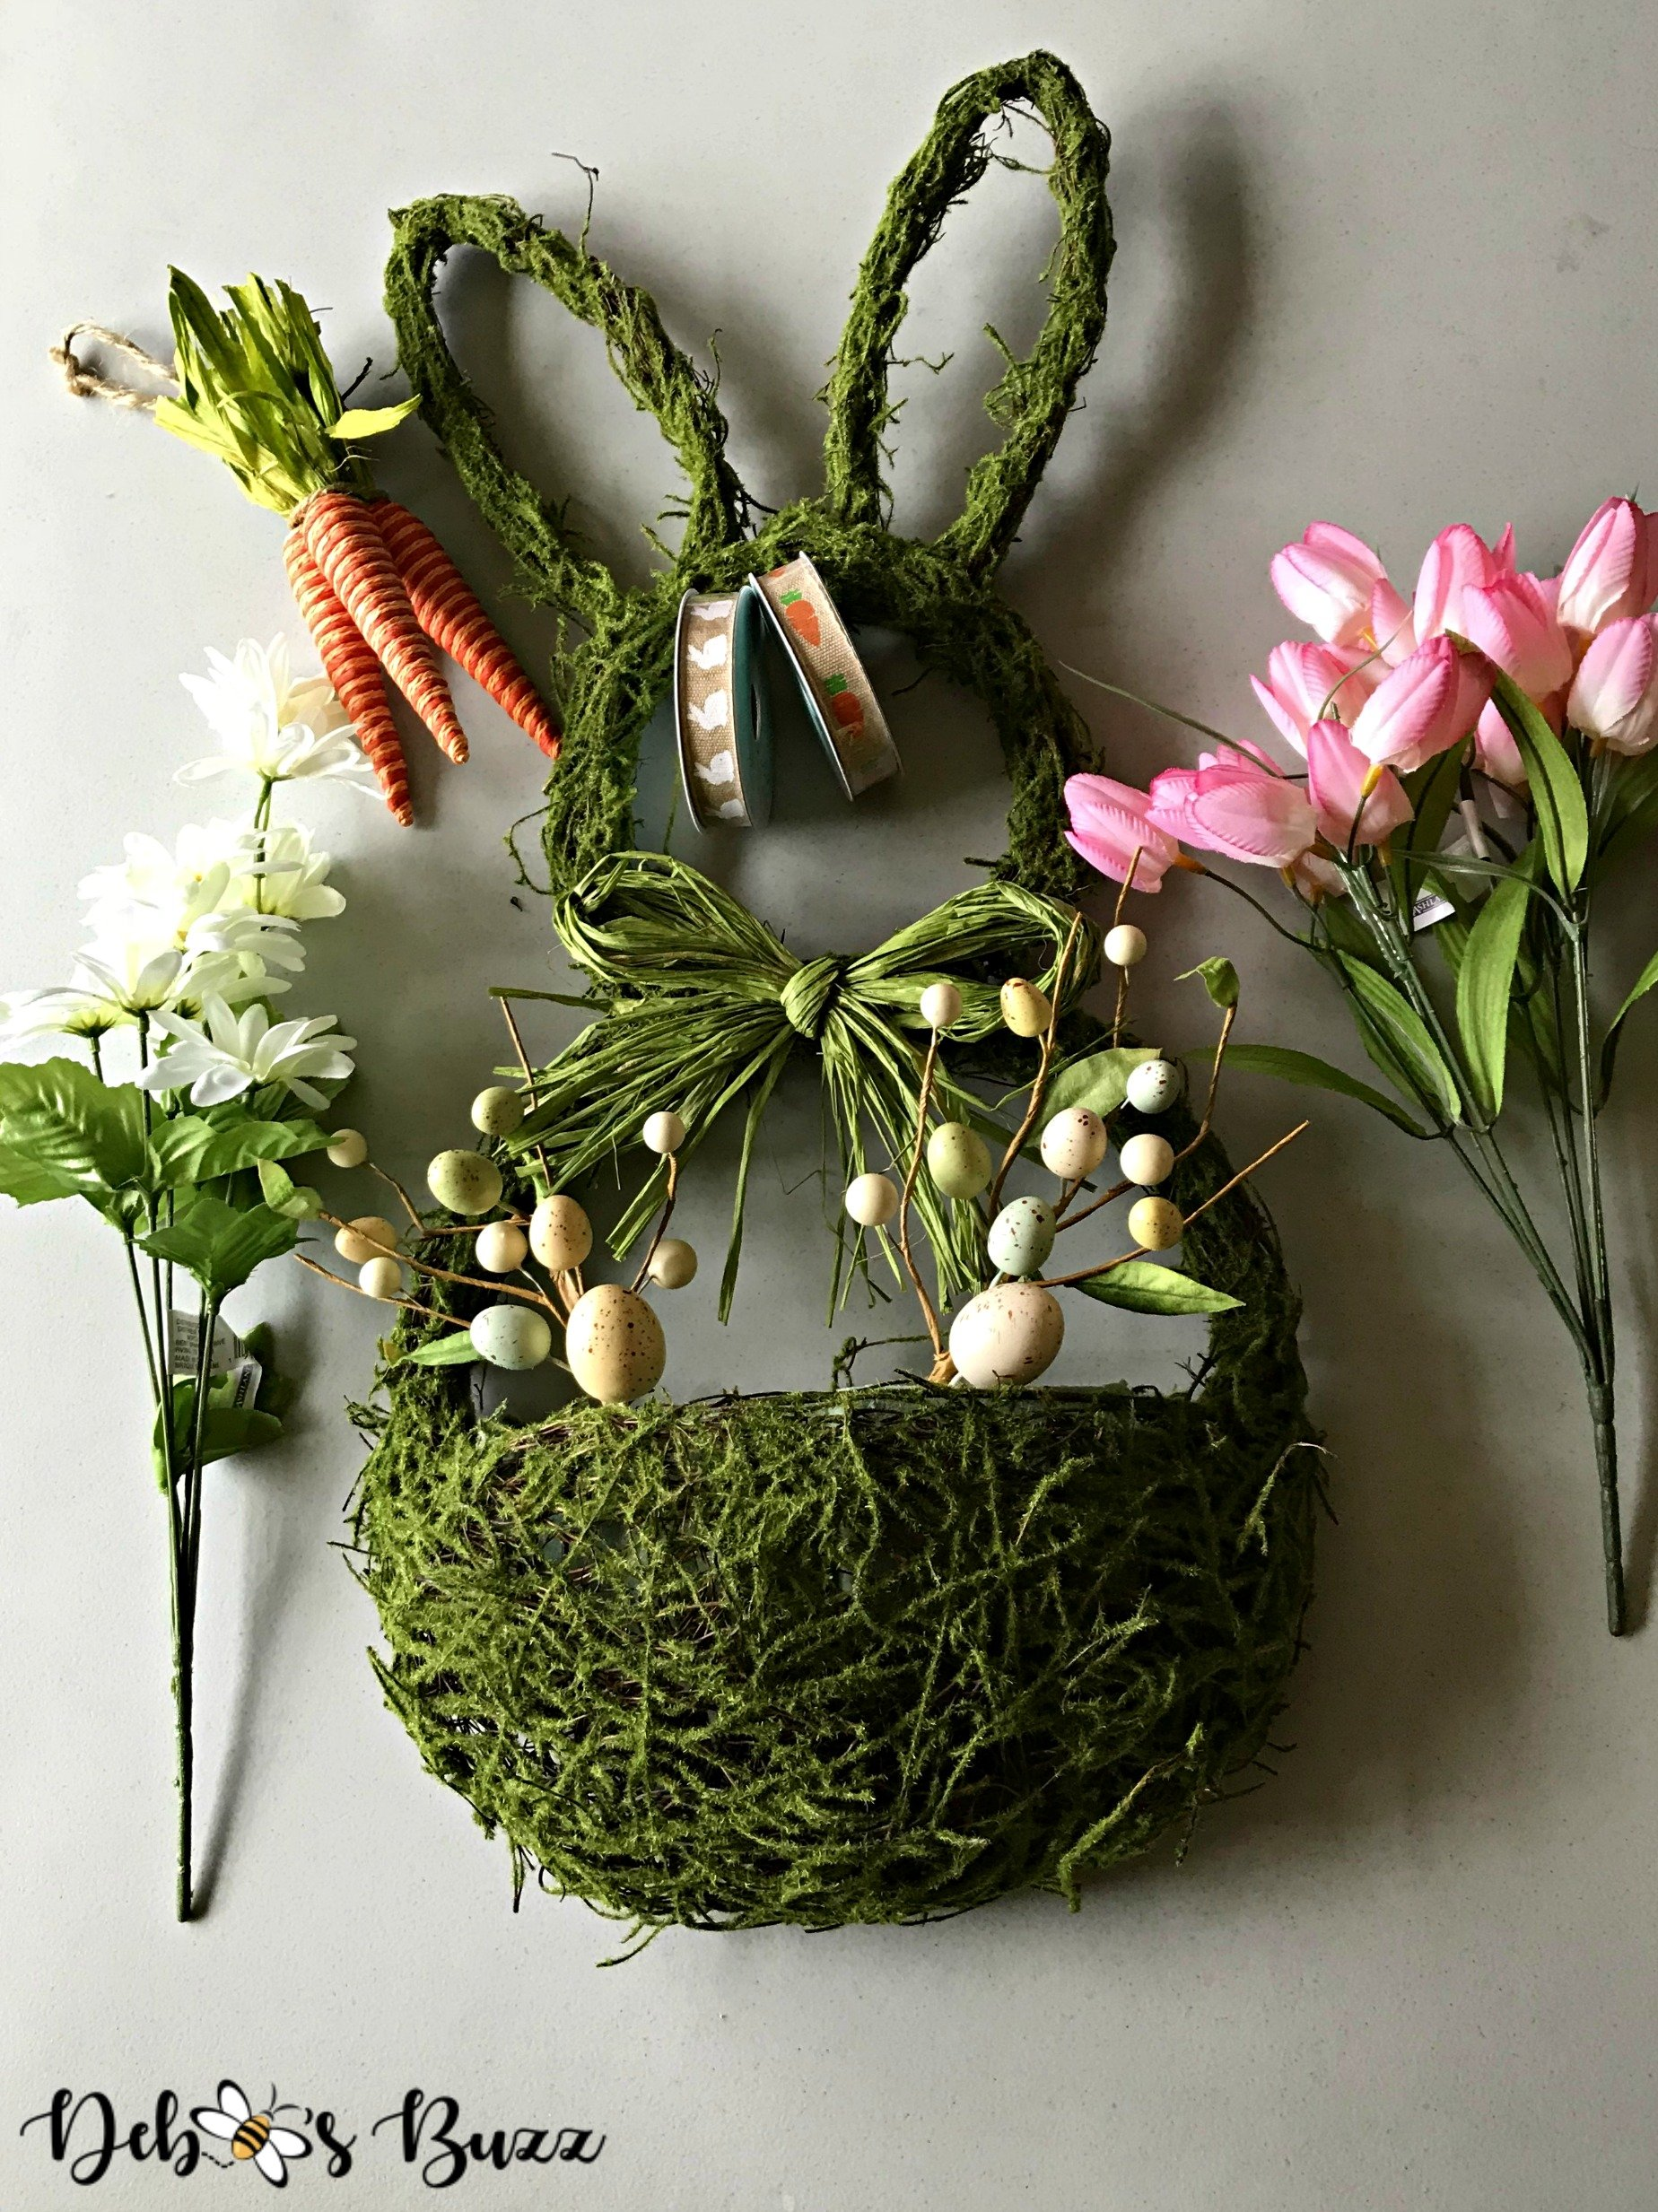 Adorable Diy Moss Bunny Wreath With Basket Of Flowers